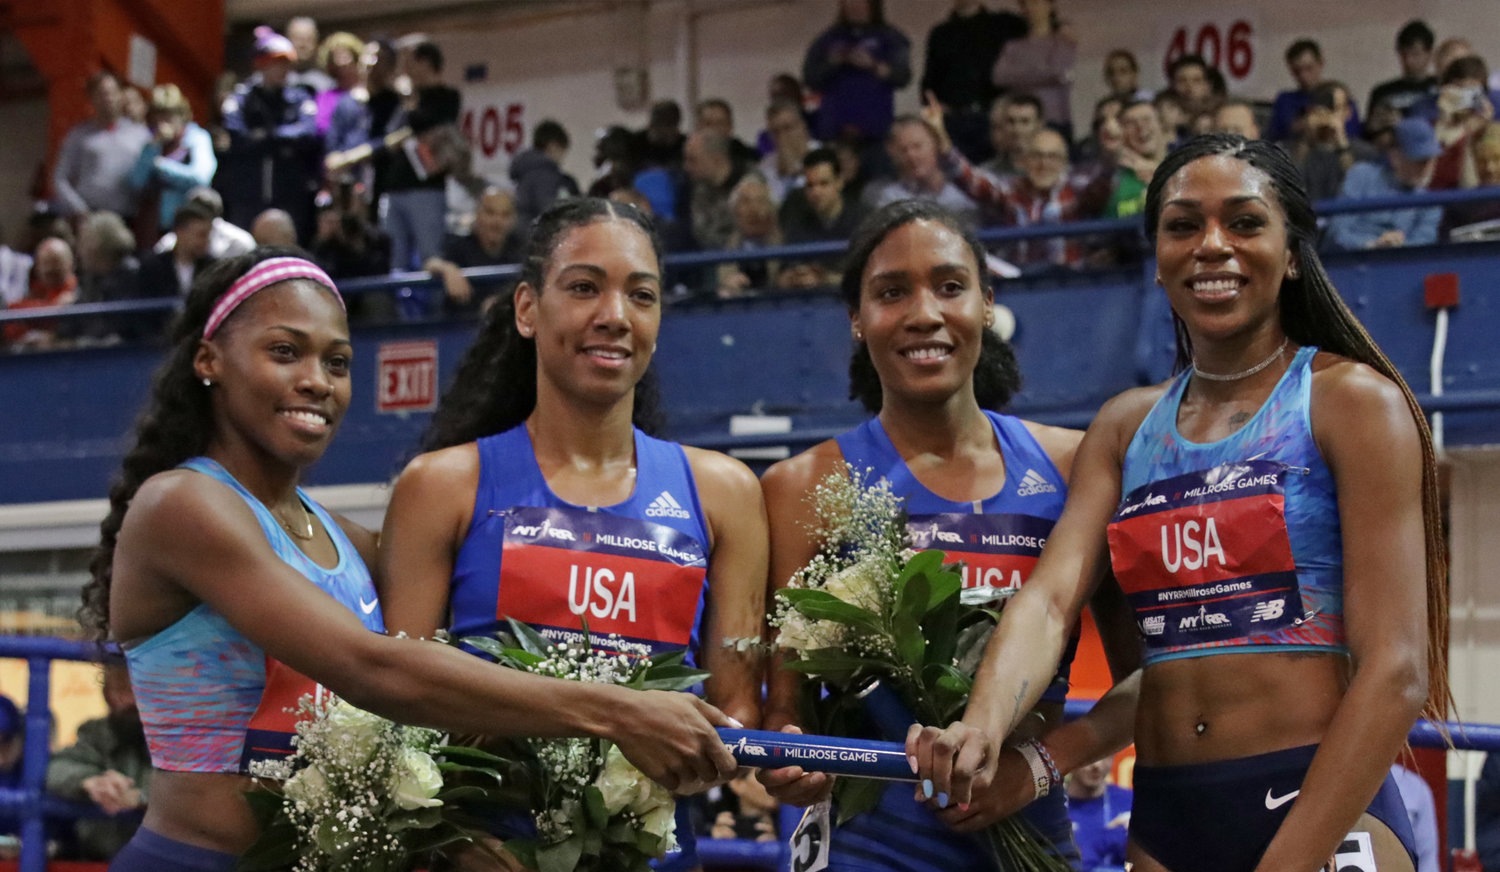 Women's 4x800 sets World Record: Chrishuna Williams, Charlene Lipsey, Ajee' Wilson and Raevyn Rogers.